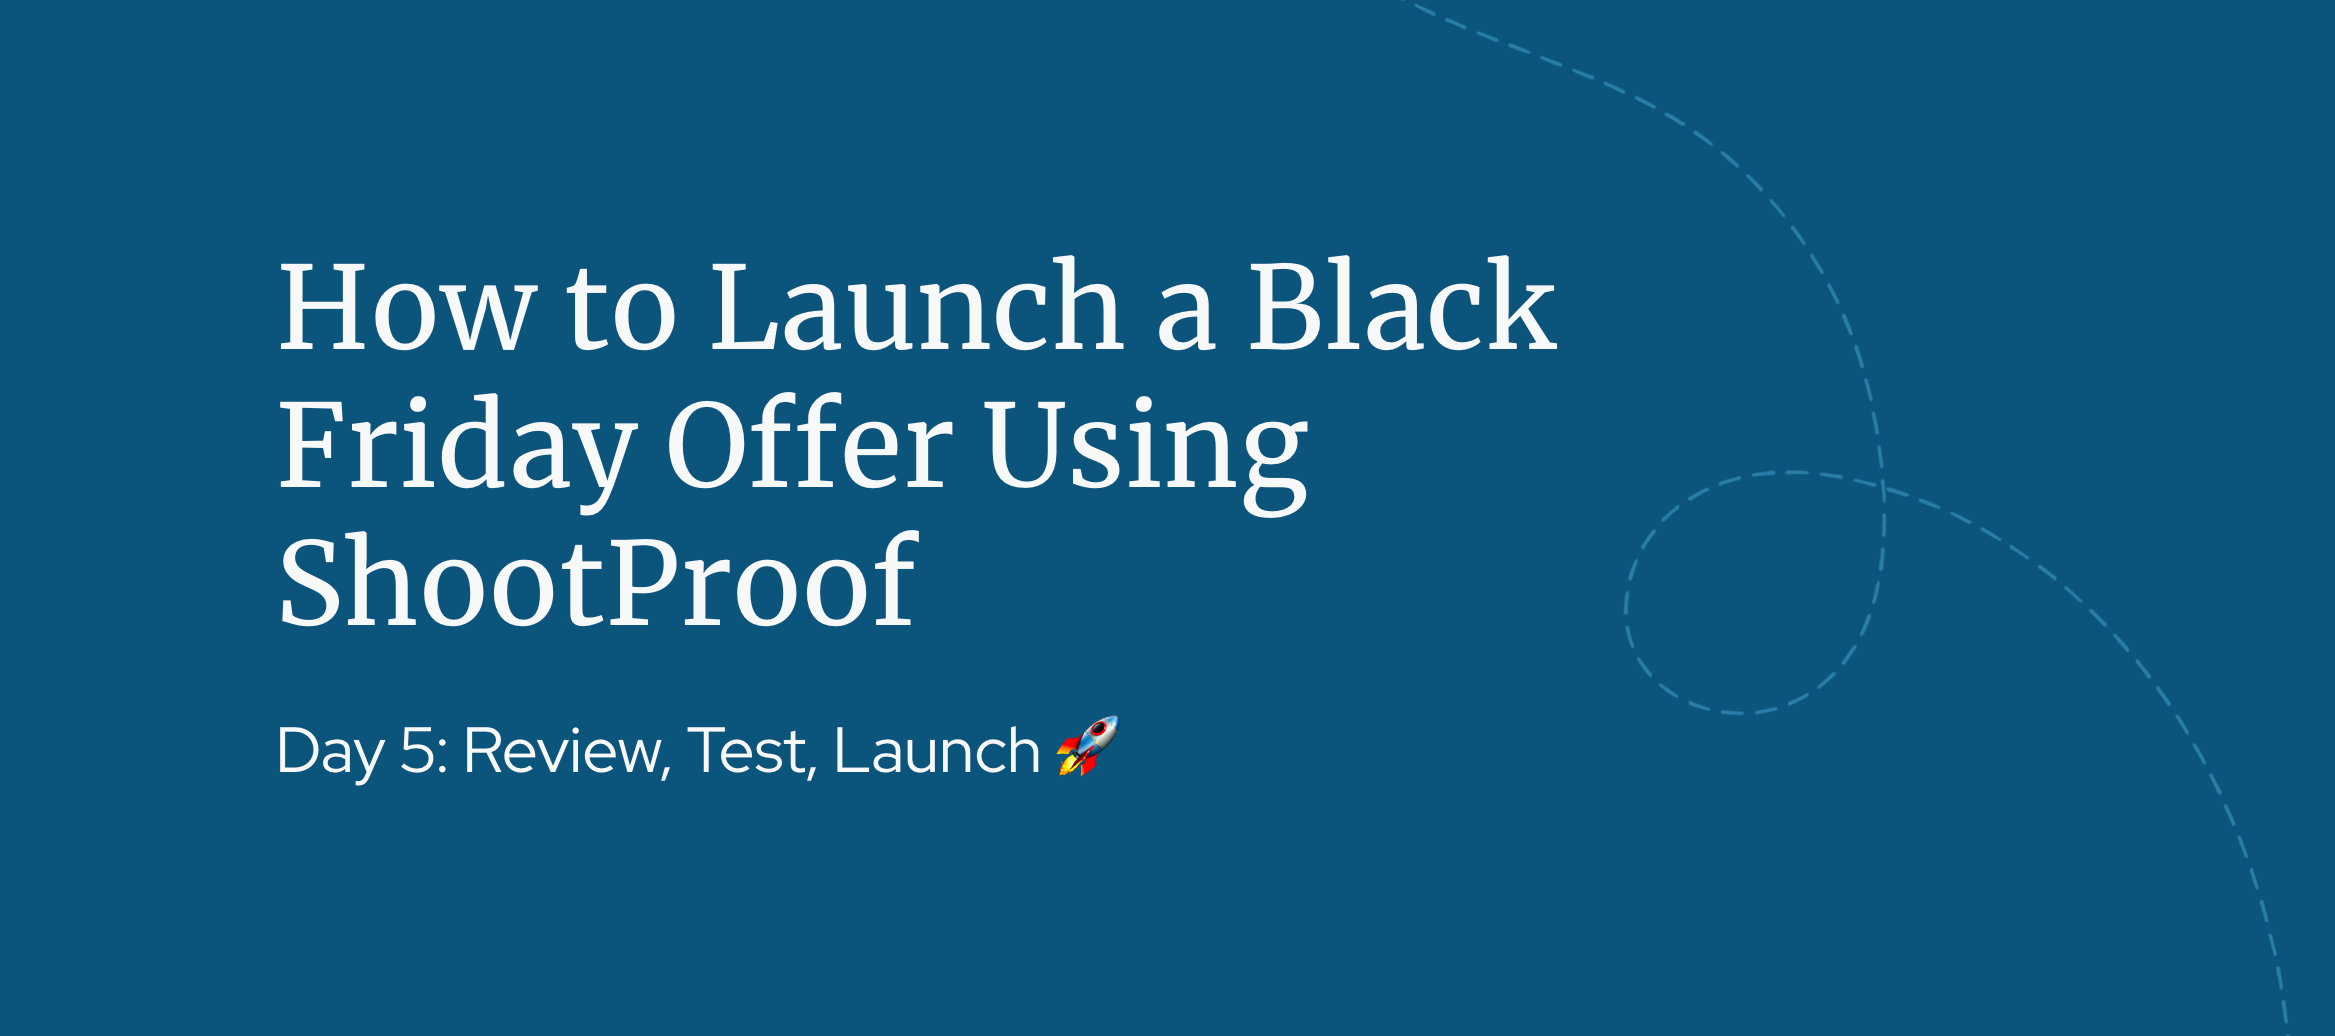 Day 5: How to Launch a Black Friday Offer Using ShootProof